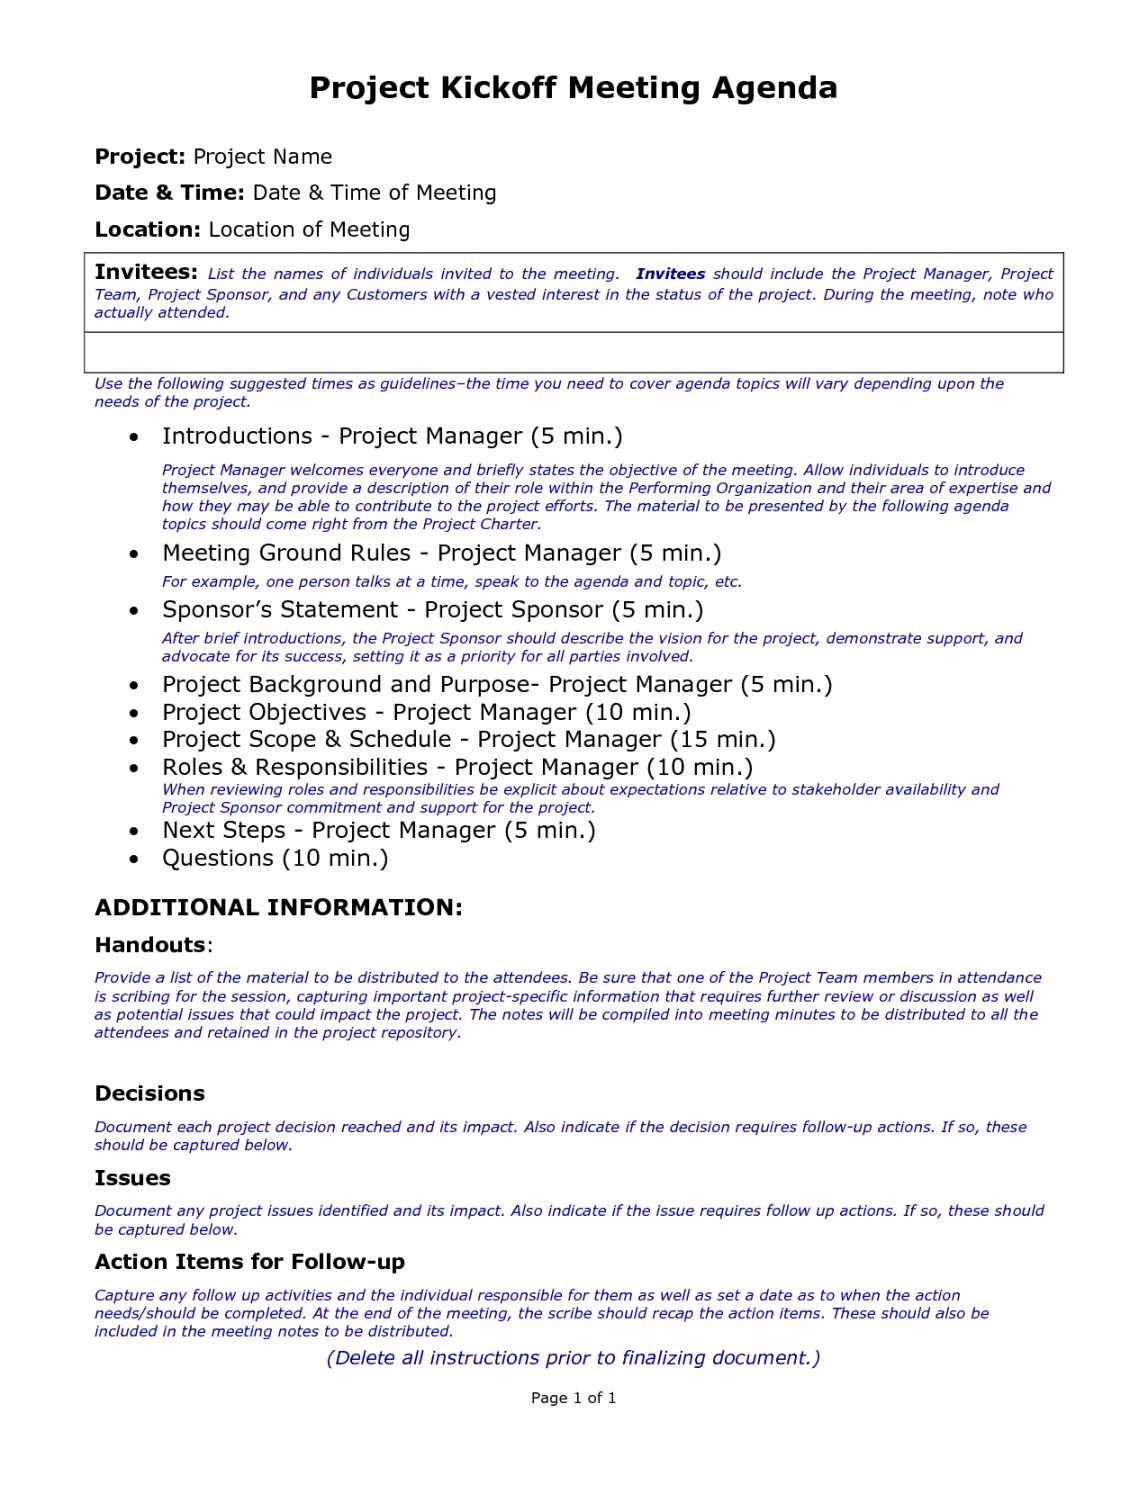 editable construction kickoff meeting agenda template this is why project management kick off meeting agenda template excel